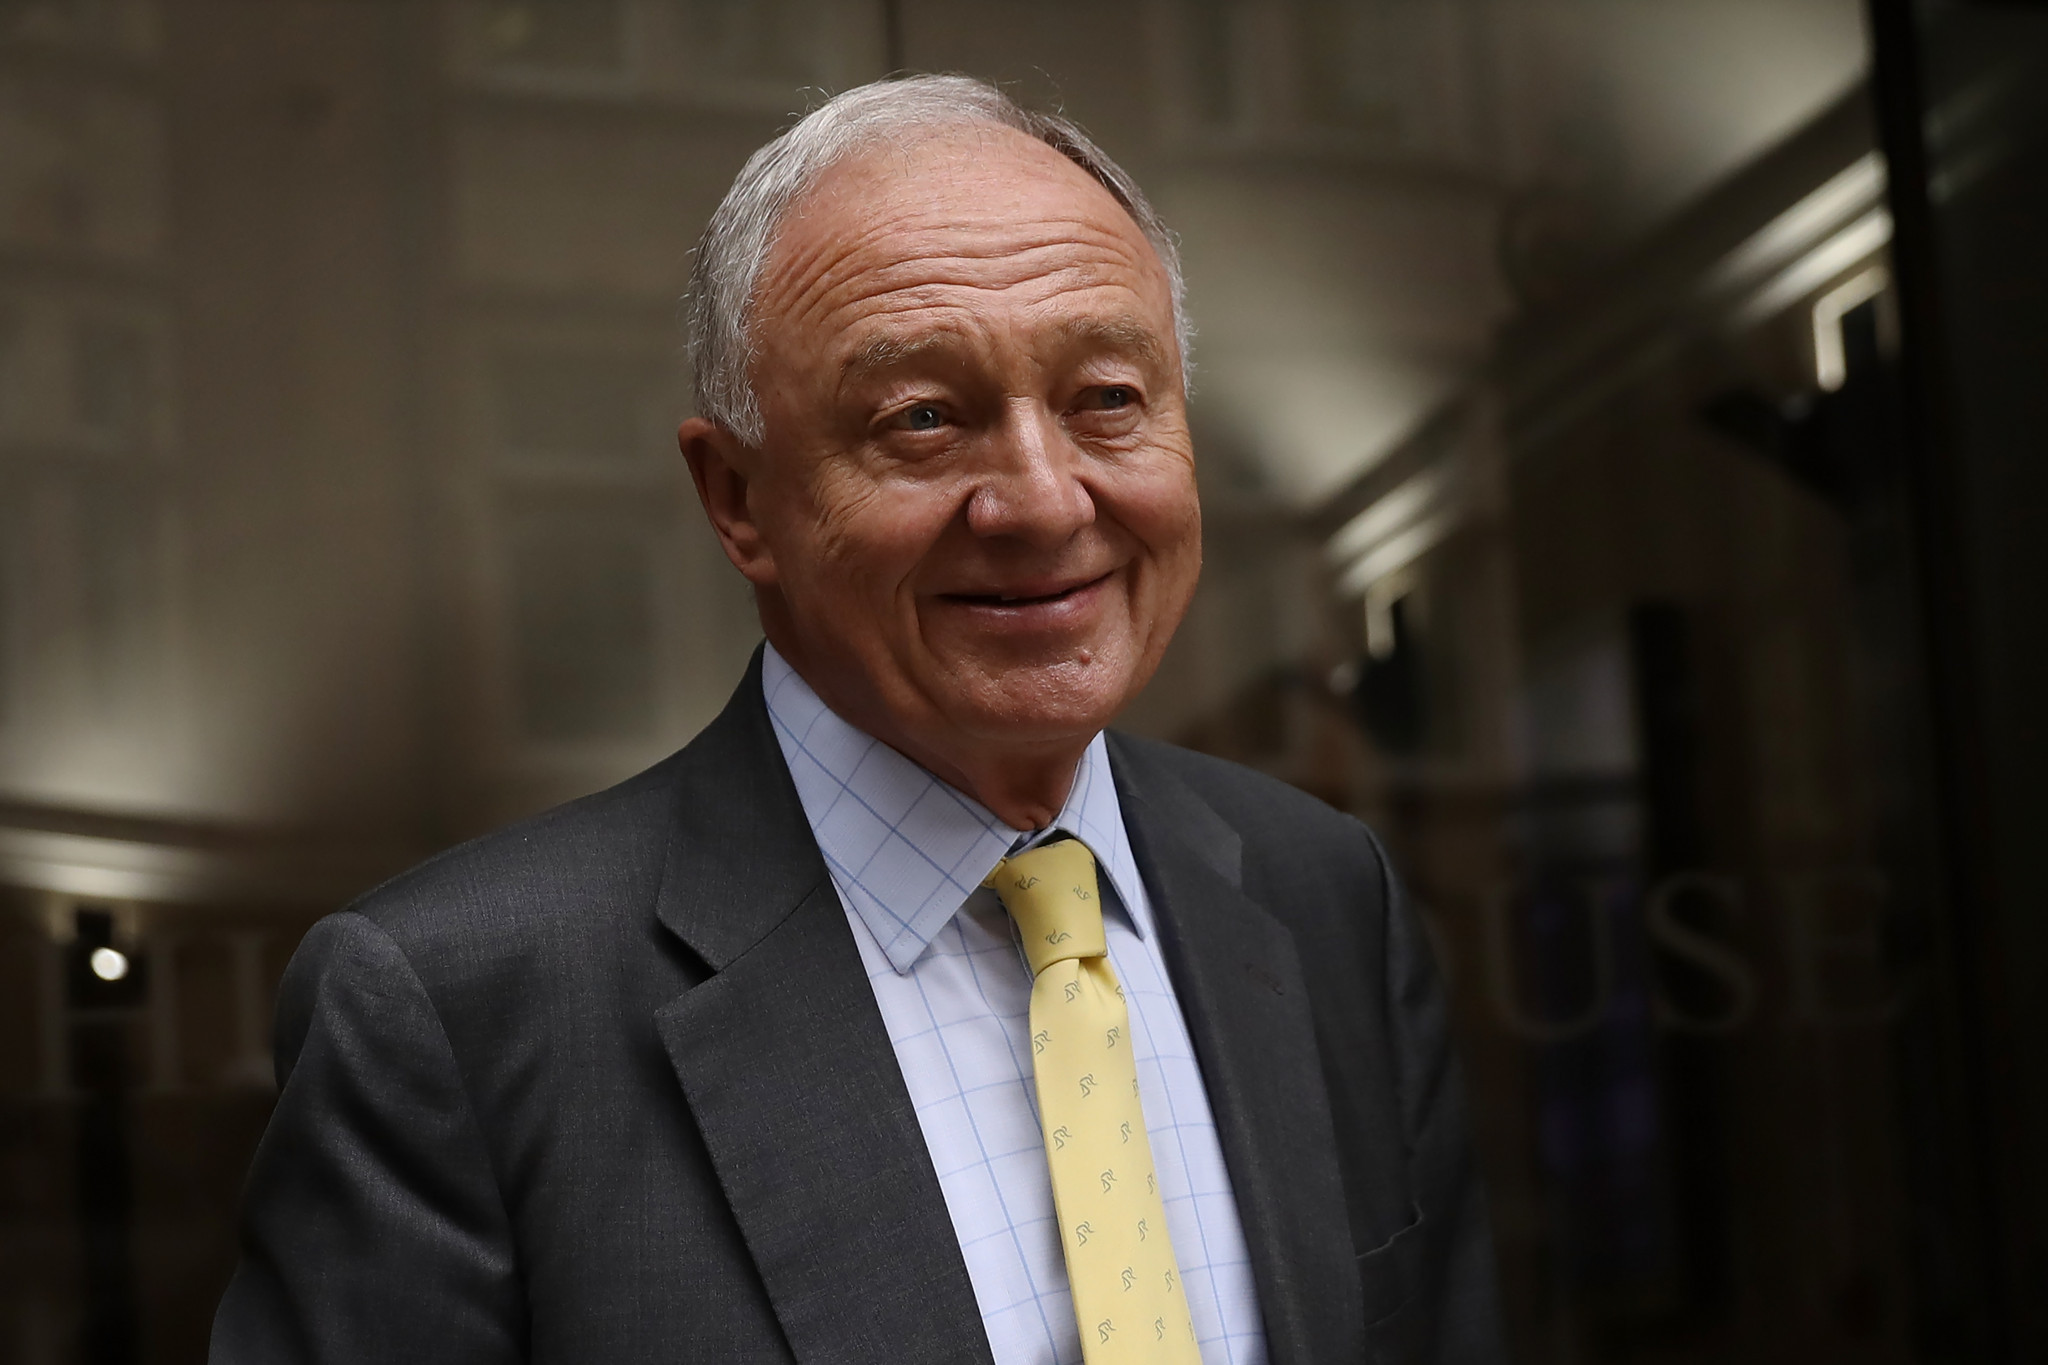 Lord Paul Deighton claimed Ken Livingstone, former London Mayor, was an example of a politican realising the potential of the Olympics to deliver key projects ©Getty Images